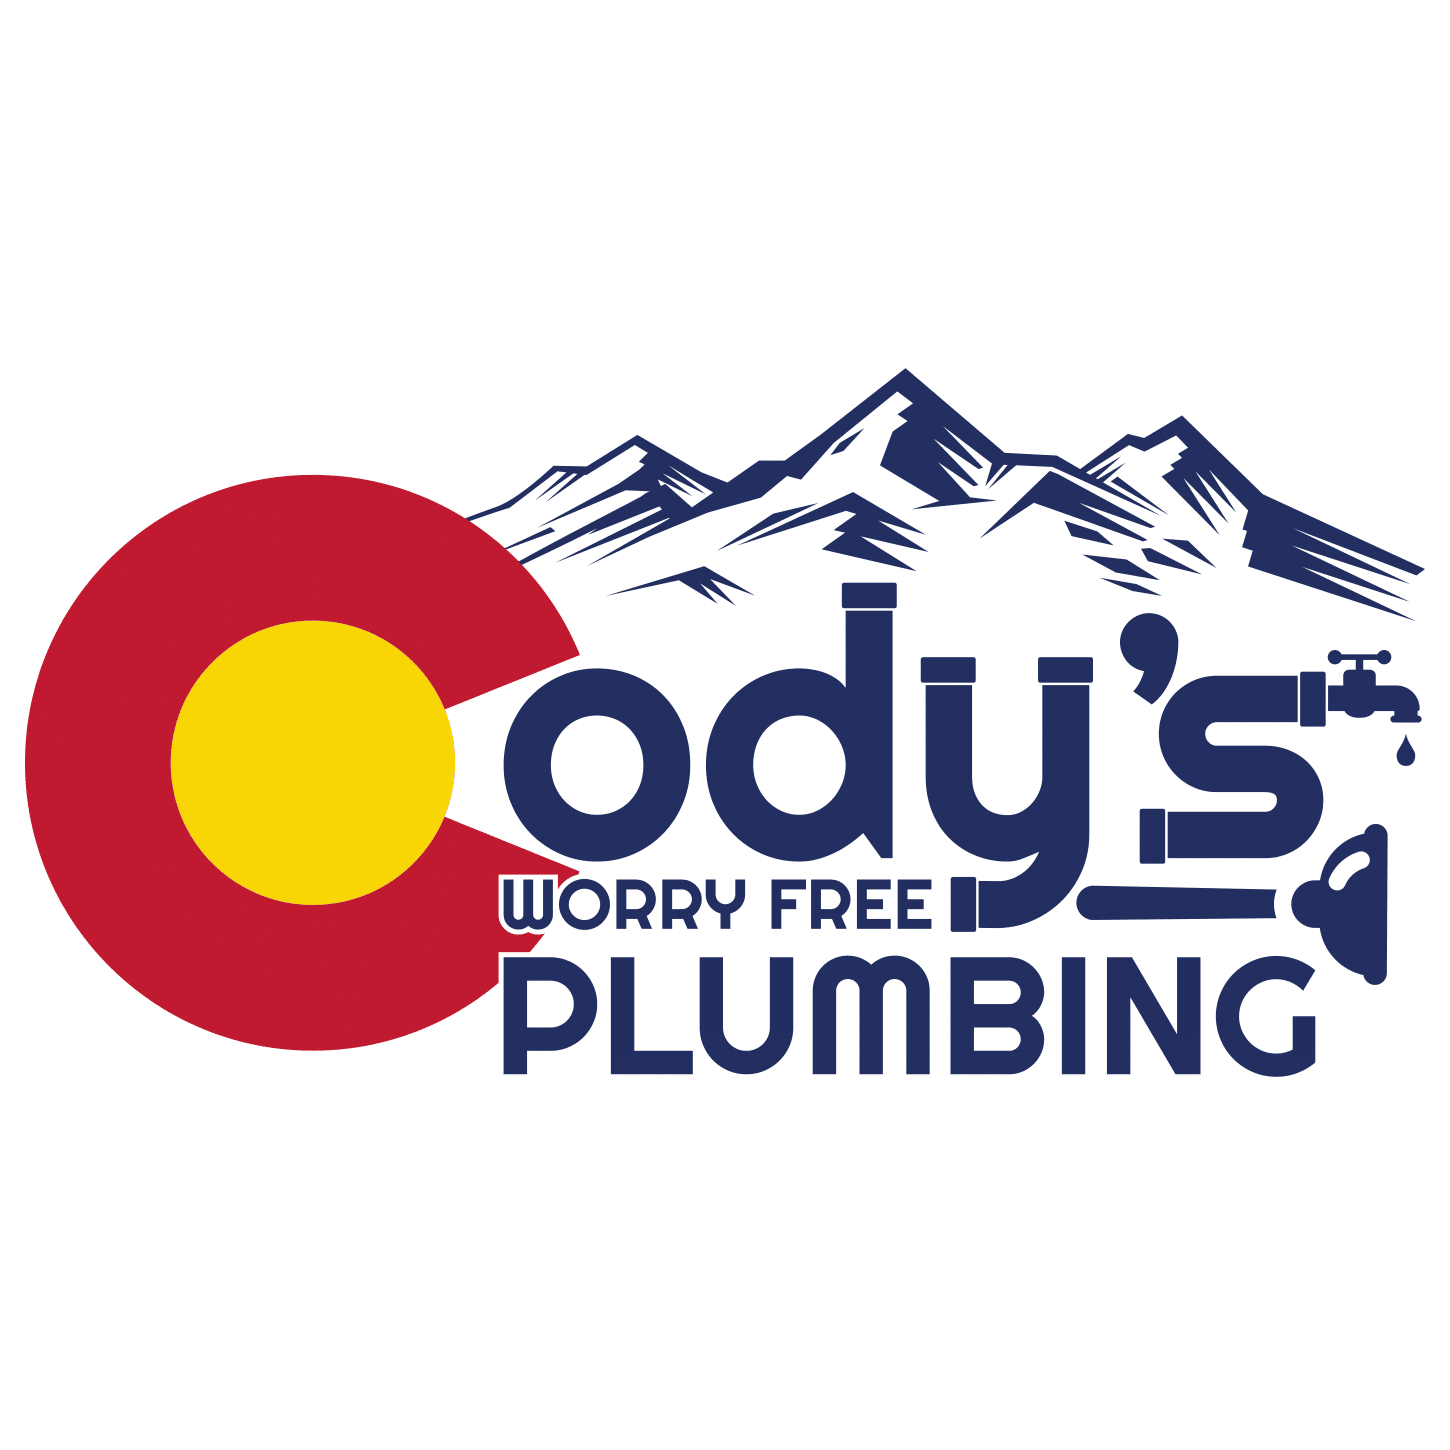 Codys Worry Free Plumbing, LLC - Colorado Springs, CO - Plumbers & Sewer Repair